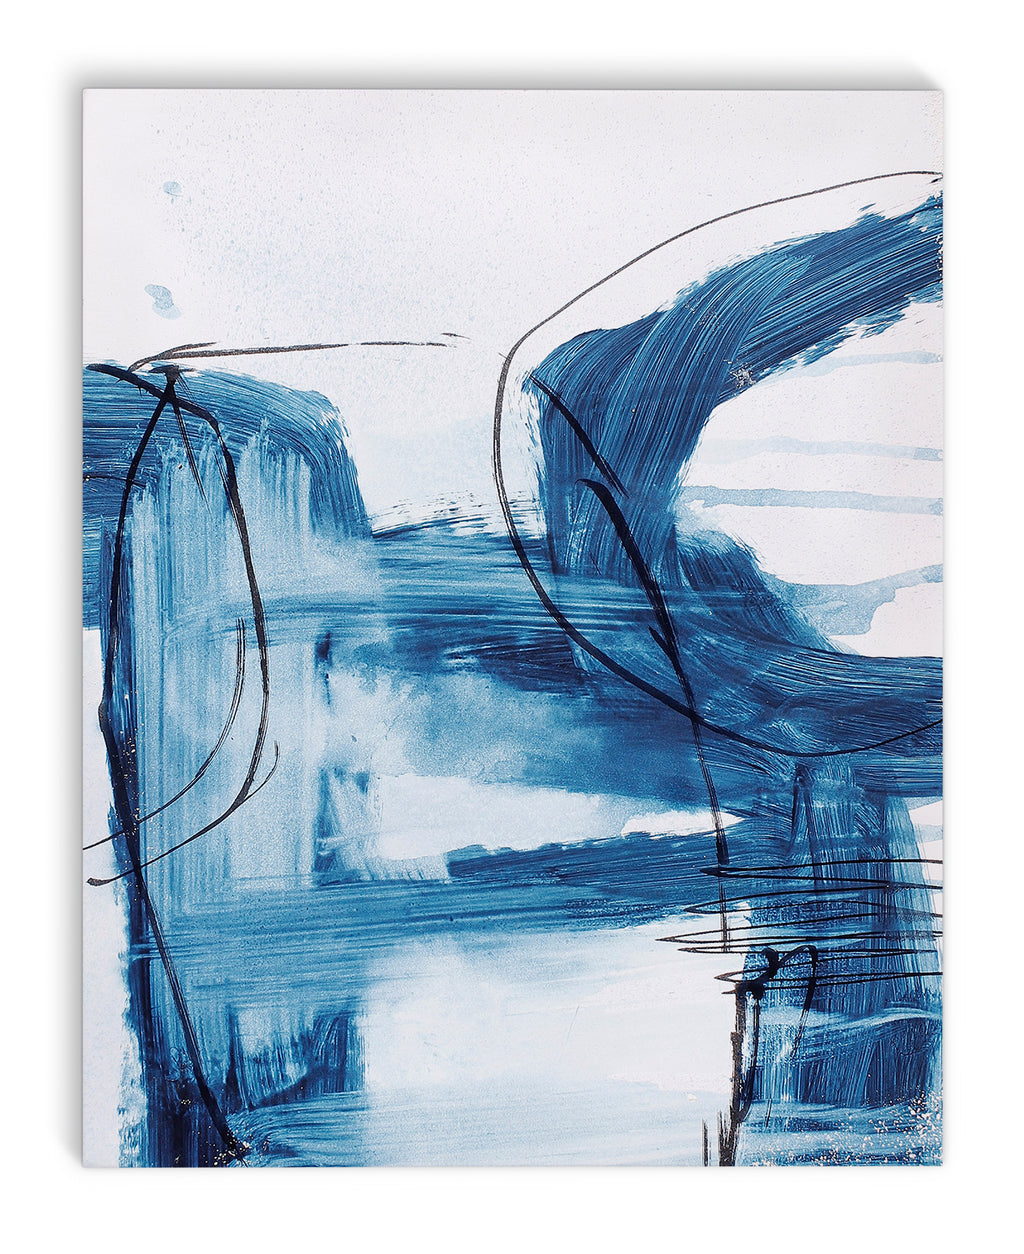 BLUE ABSTRACT SIX Canvas Art By Jolina Anthony